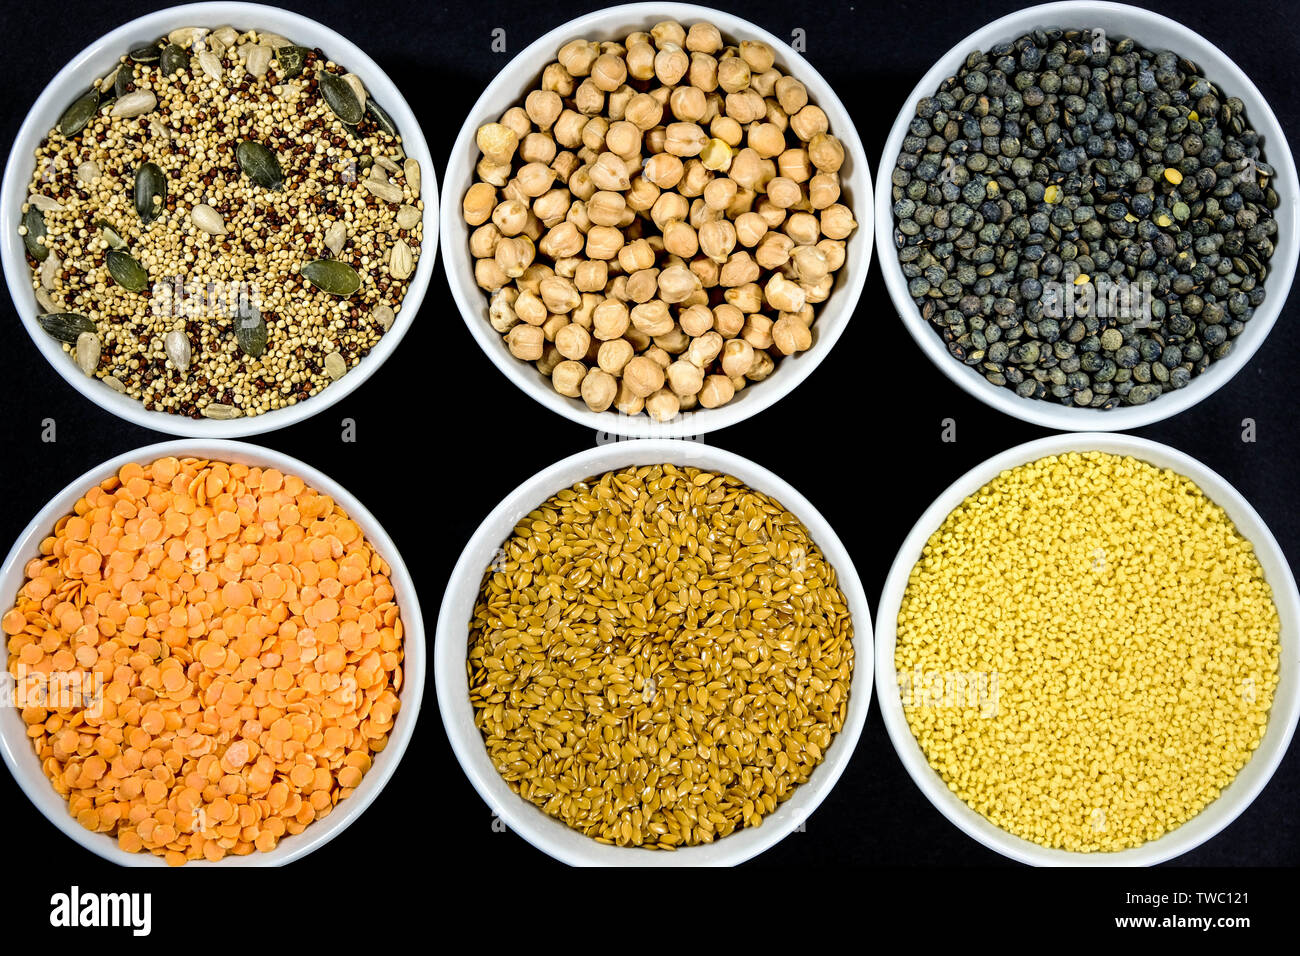 Healthy Selection of Mixed Seeds Sunflower Chia Linseed Couscous Chickpeas Red Green Lentils in White Bowls Stock Photo